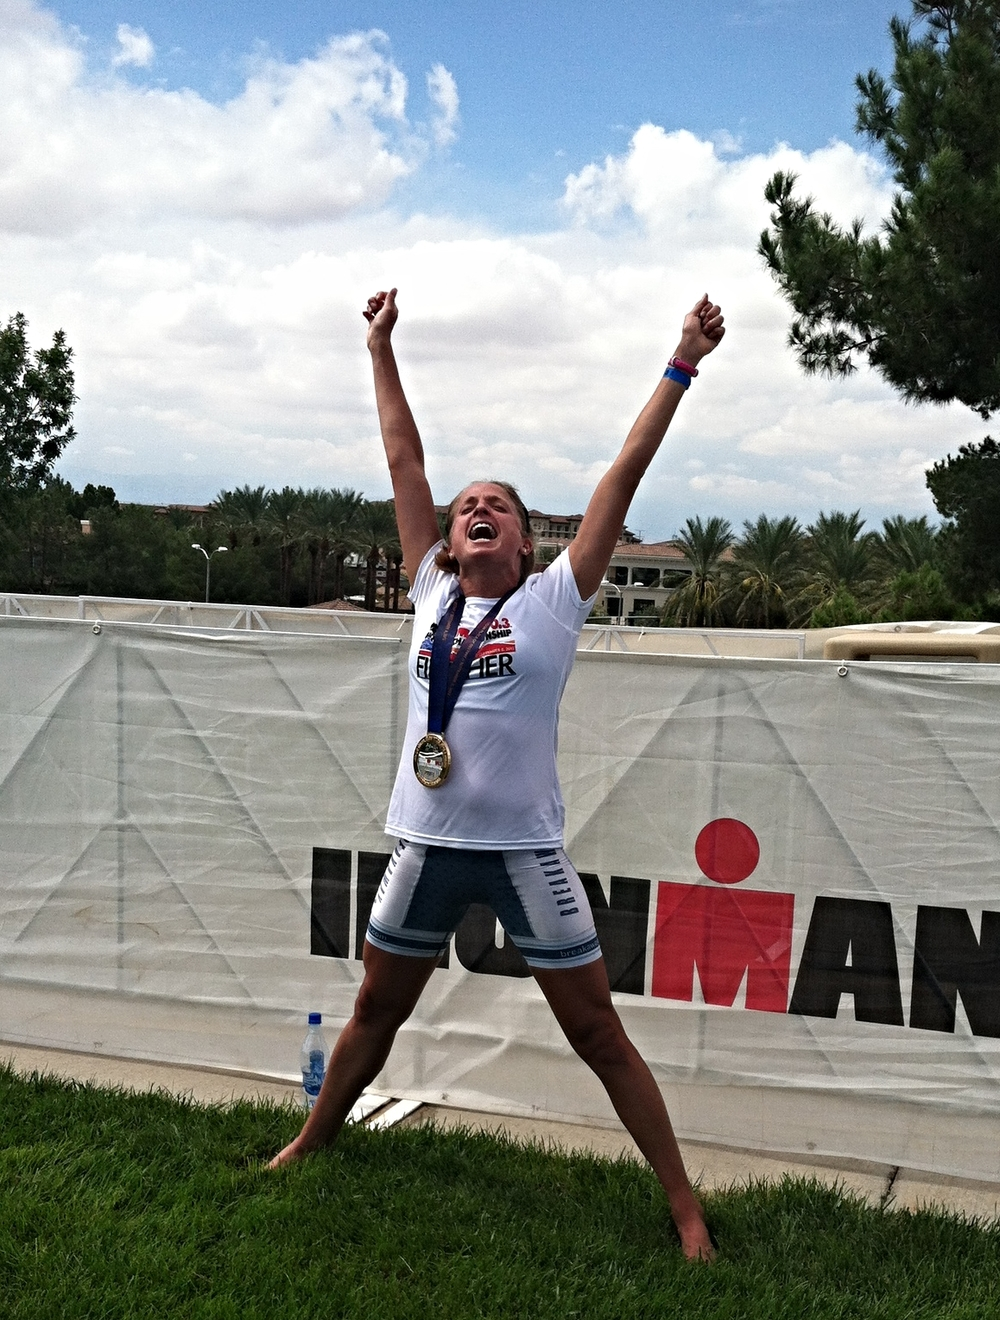 Celebrating a Sweet Victory at the 2013 Ironman 70.3 World Championships